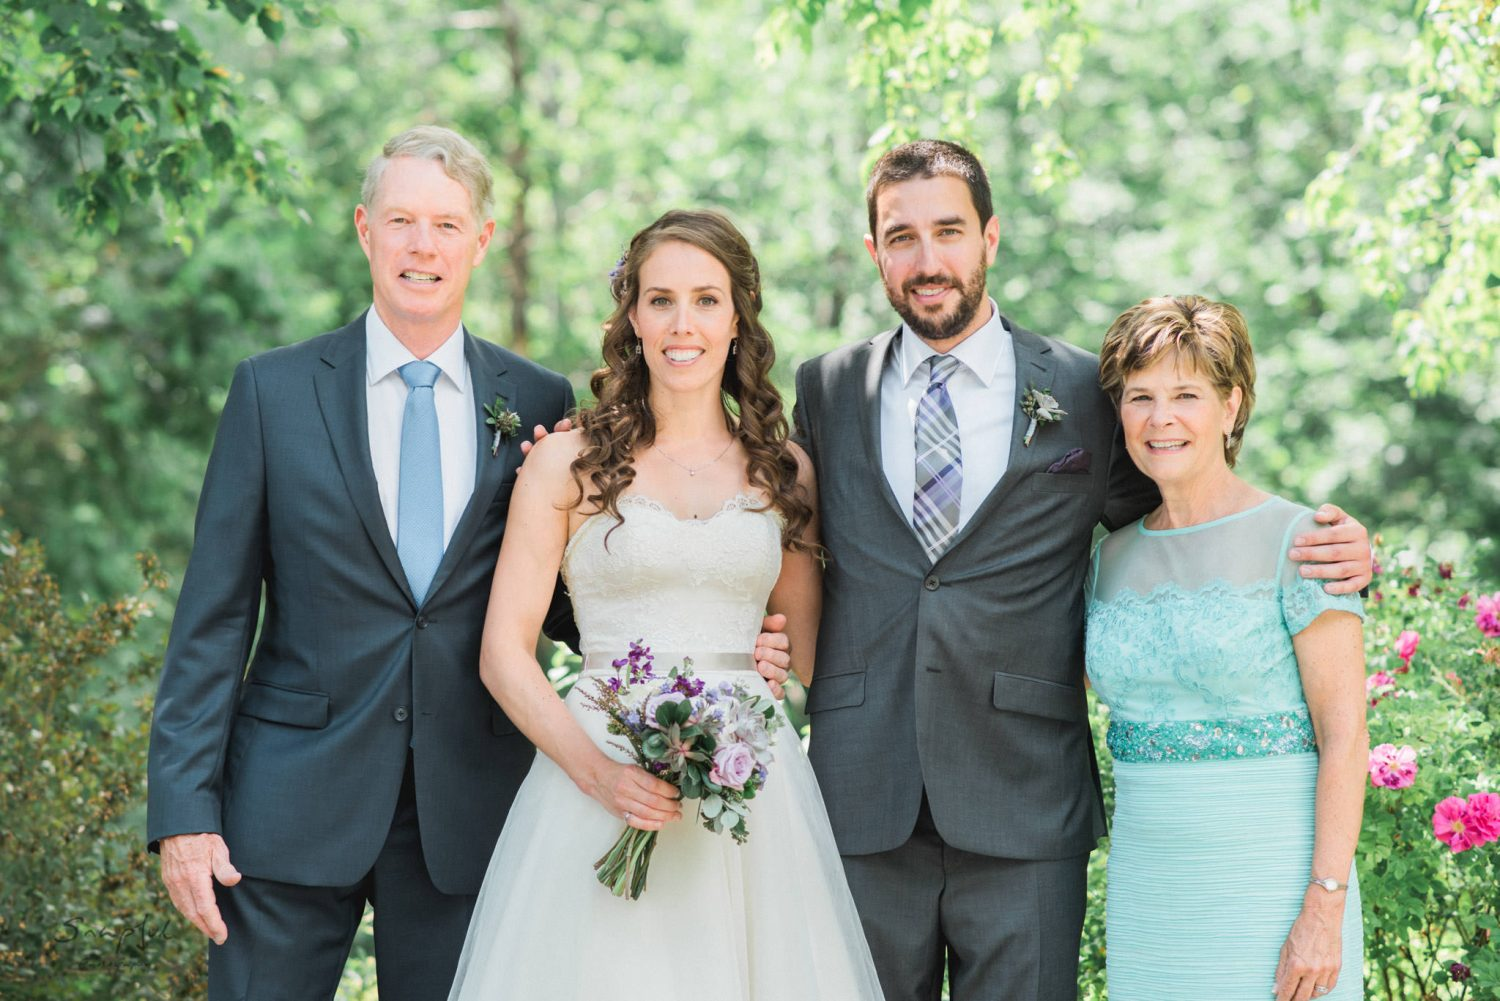 Family portrait at Alton Mill Wedding Snapful Photography